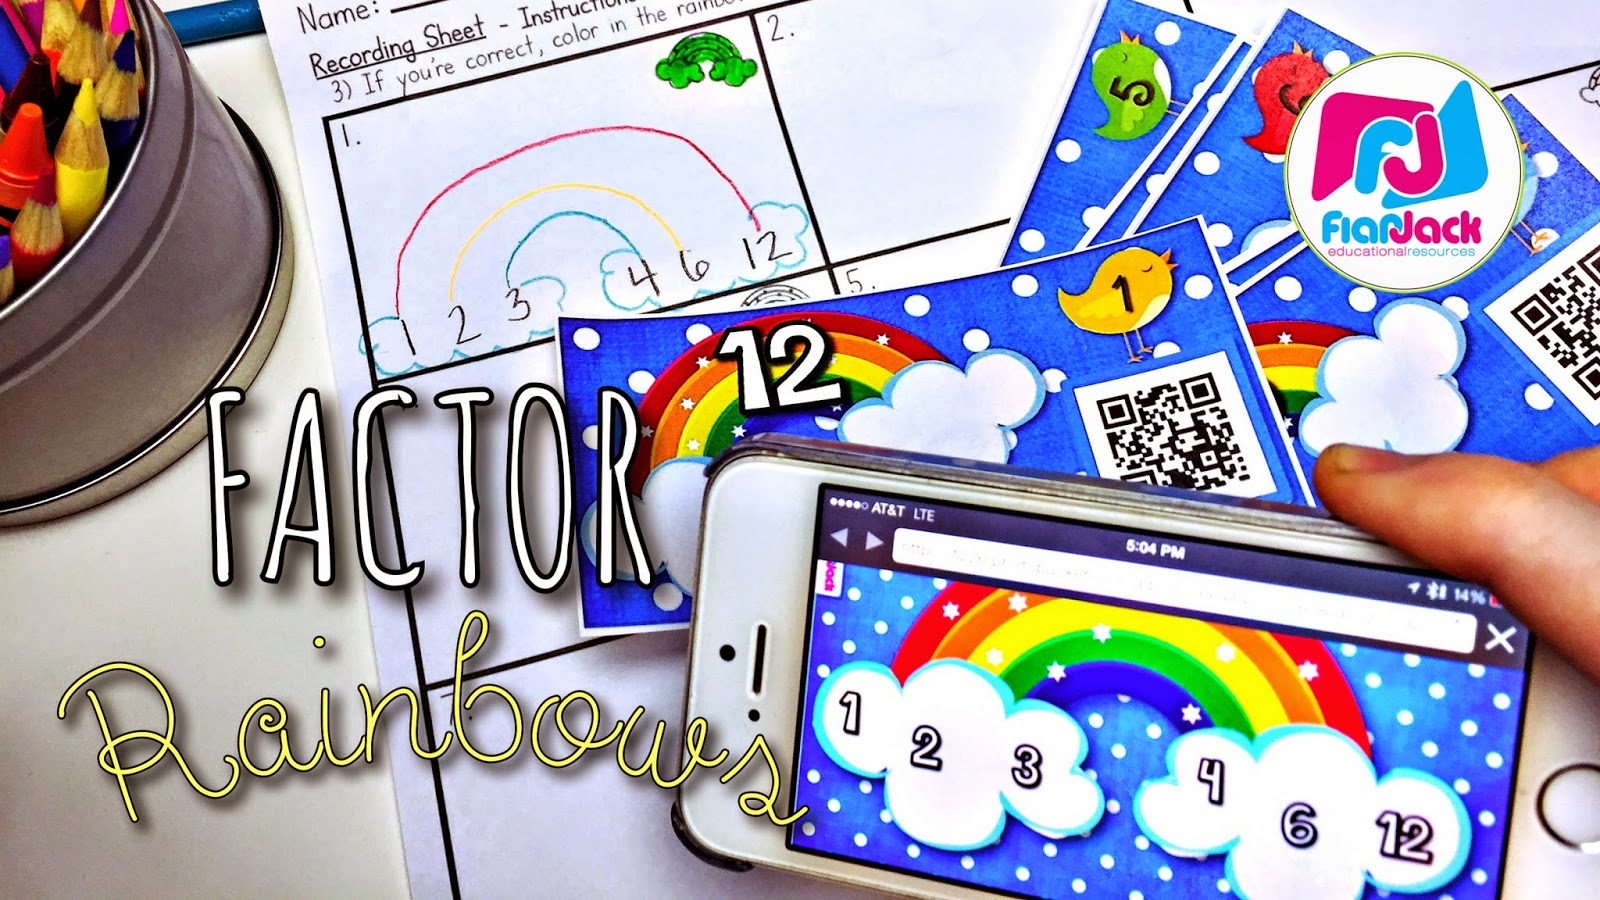 Factor Rainbows YouTube Video